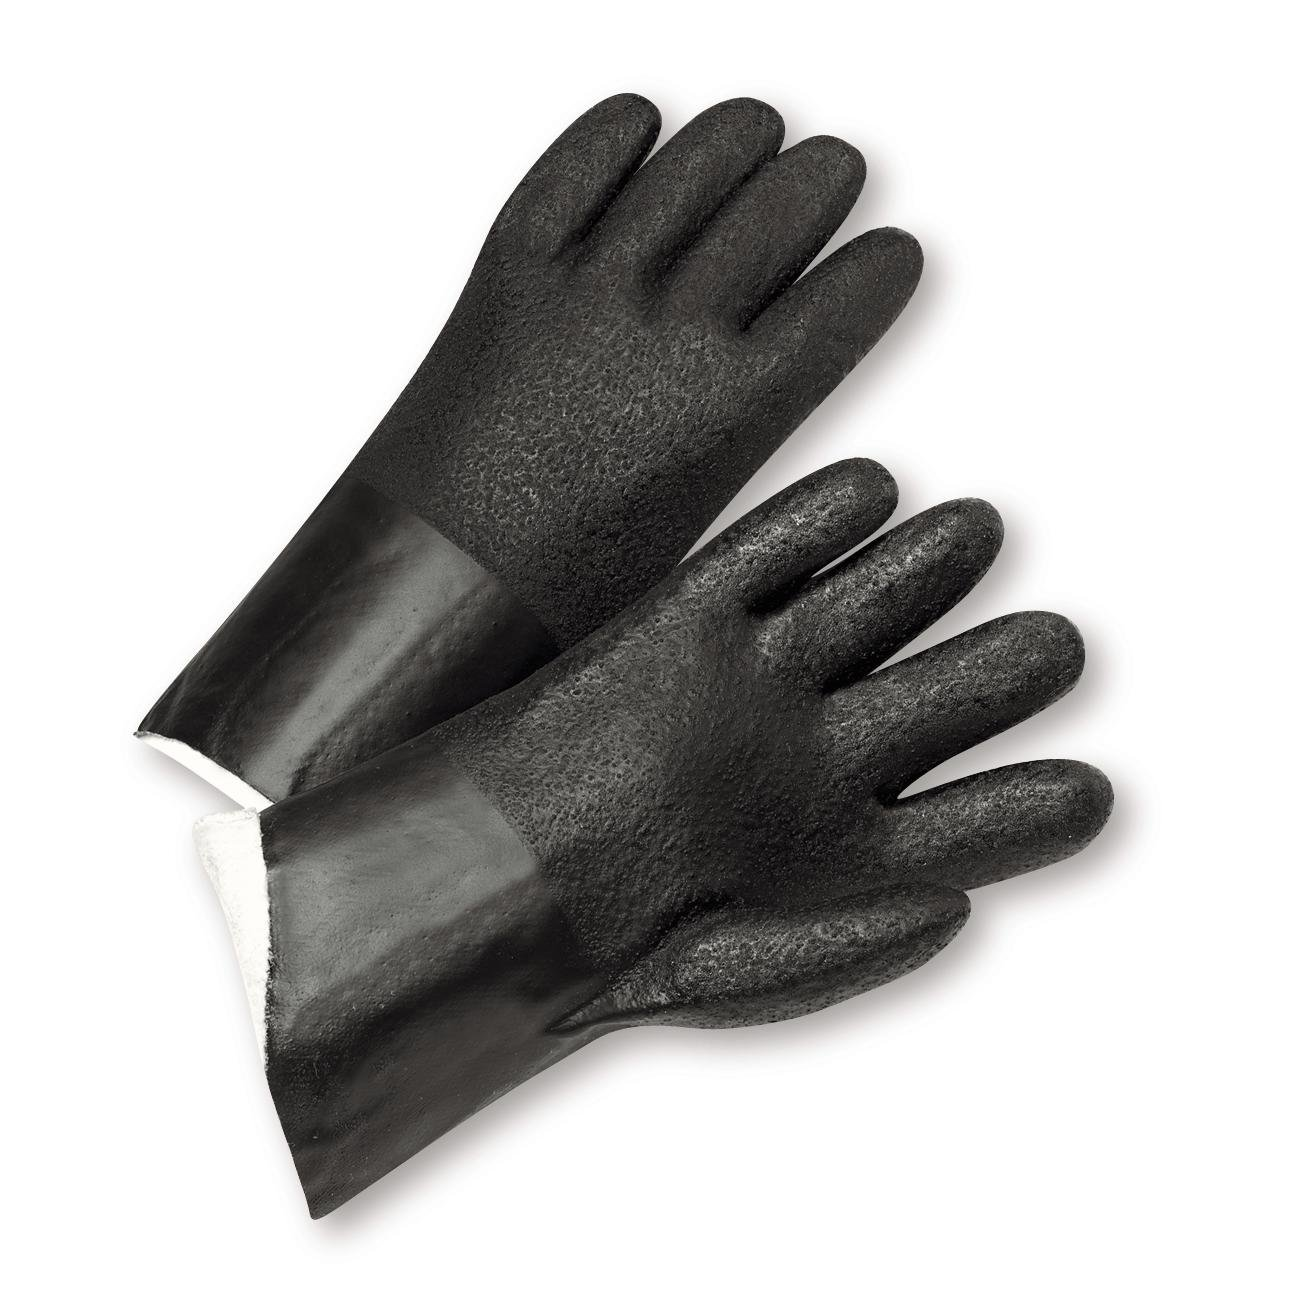 Pack of 12 West Chester J210 Standard Acid Grip PVC Jersey Lined Gloves Size 10 Black